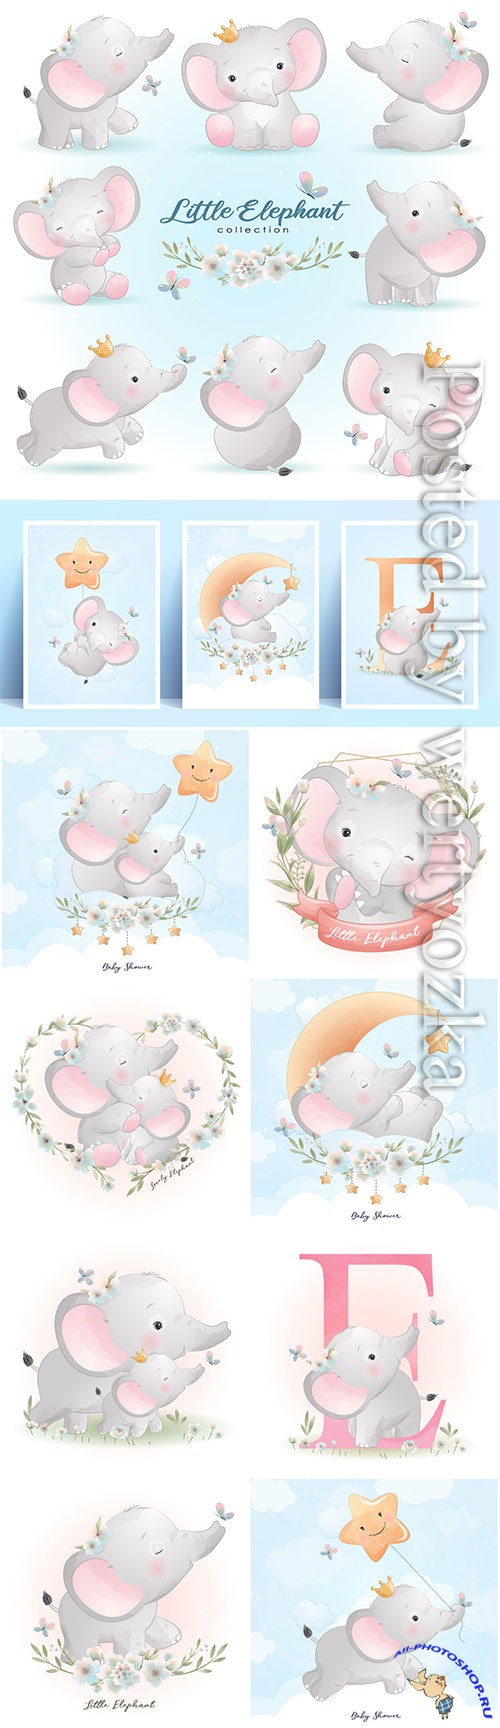 Cute doodle elephant poses with floral illustration premium vector